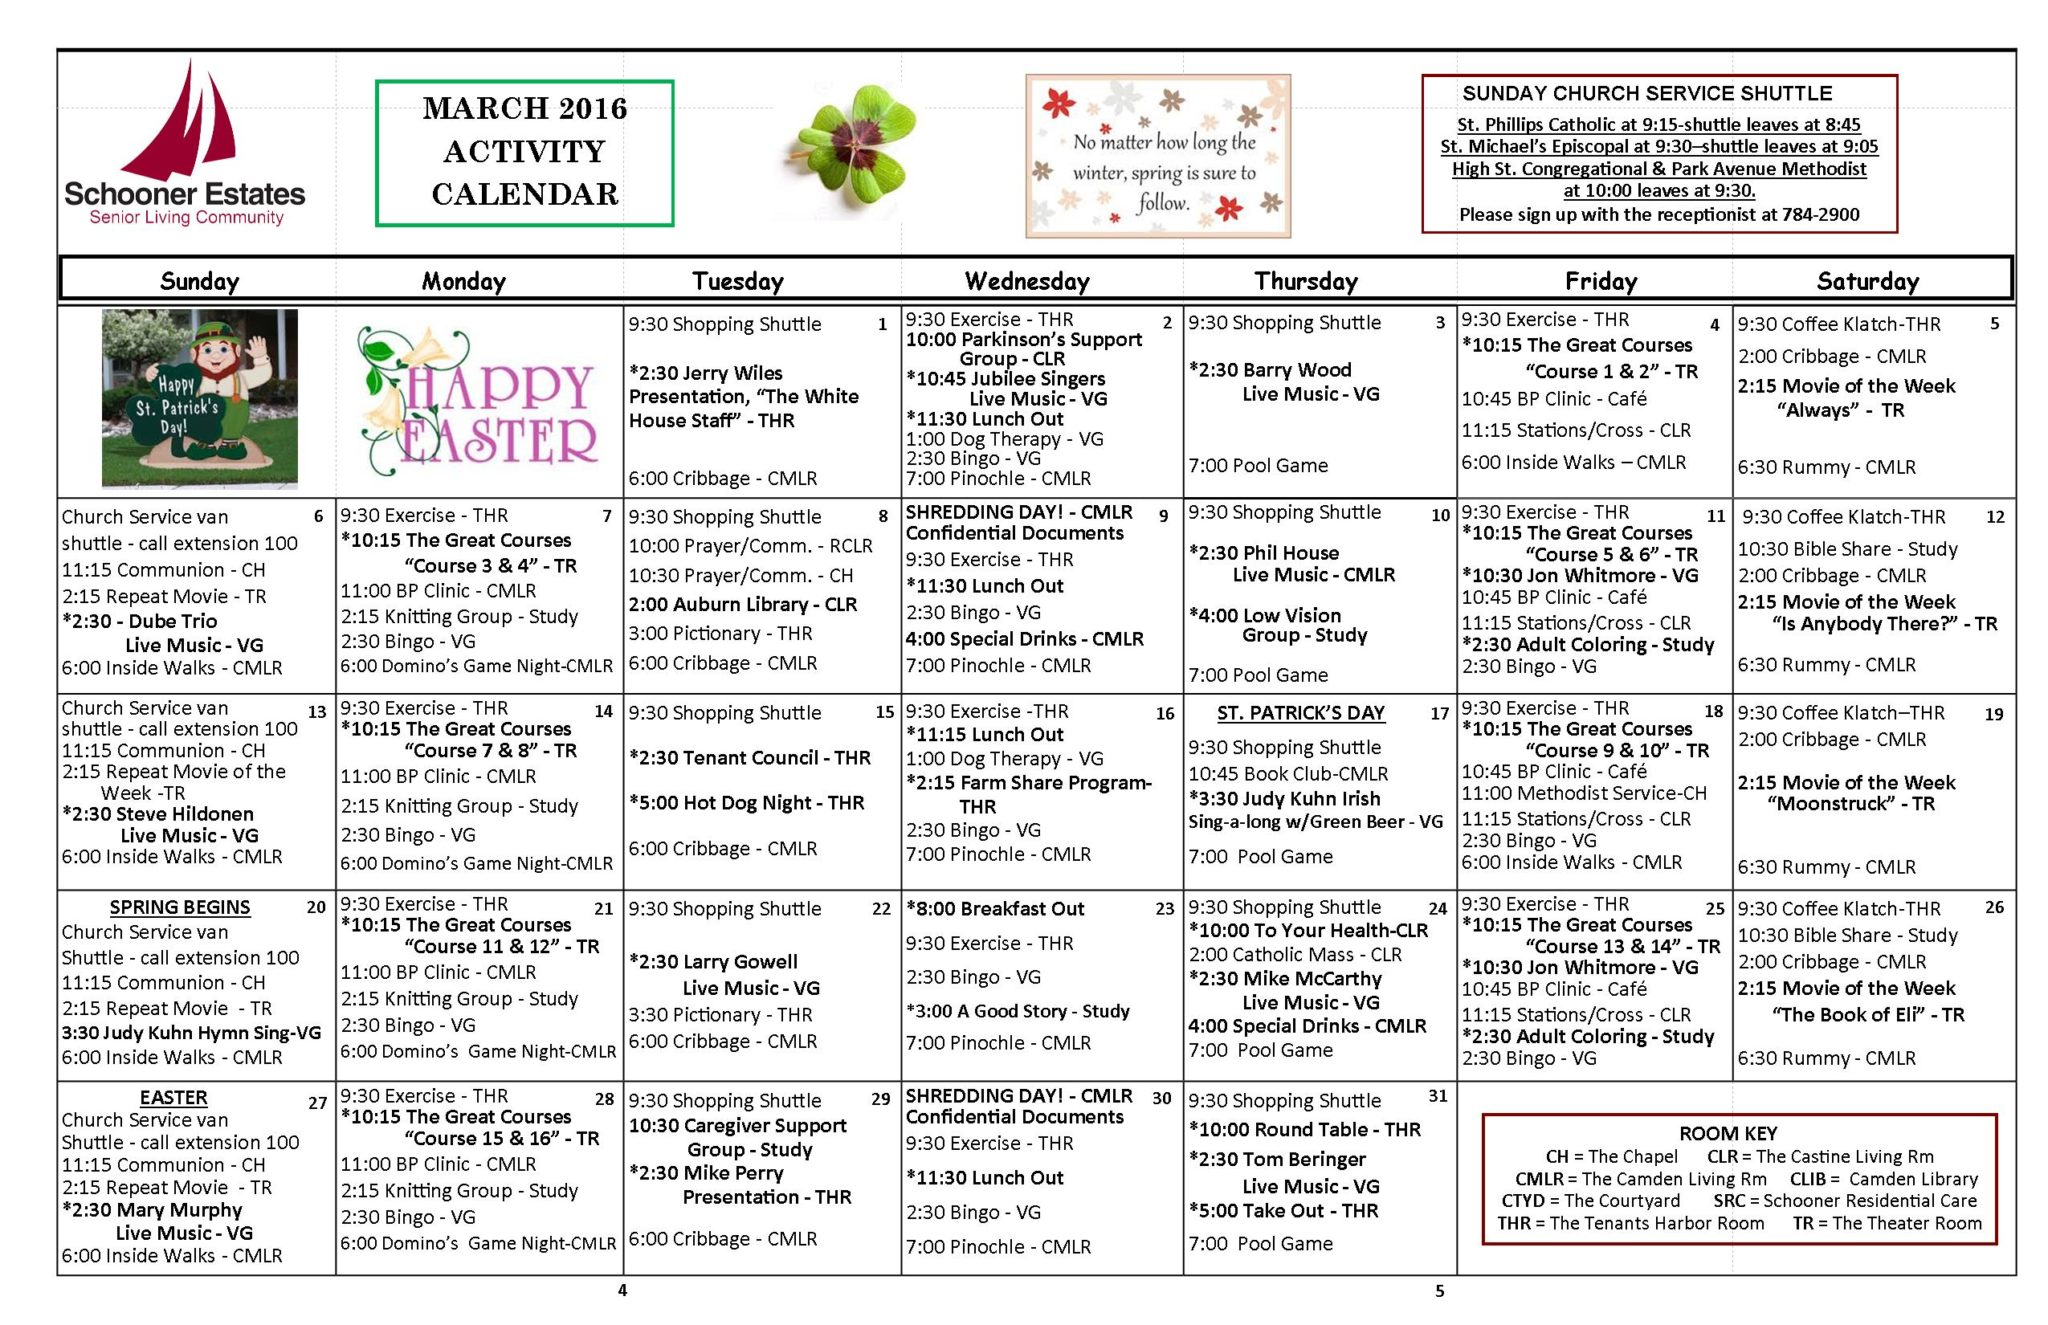 March 2016 Independent Living Activity Calendar